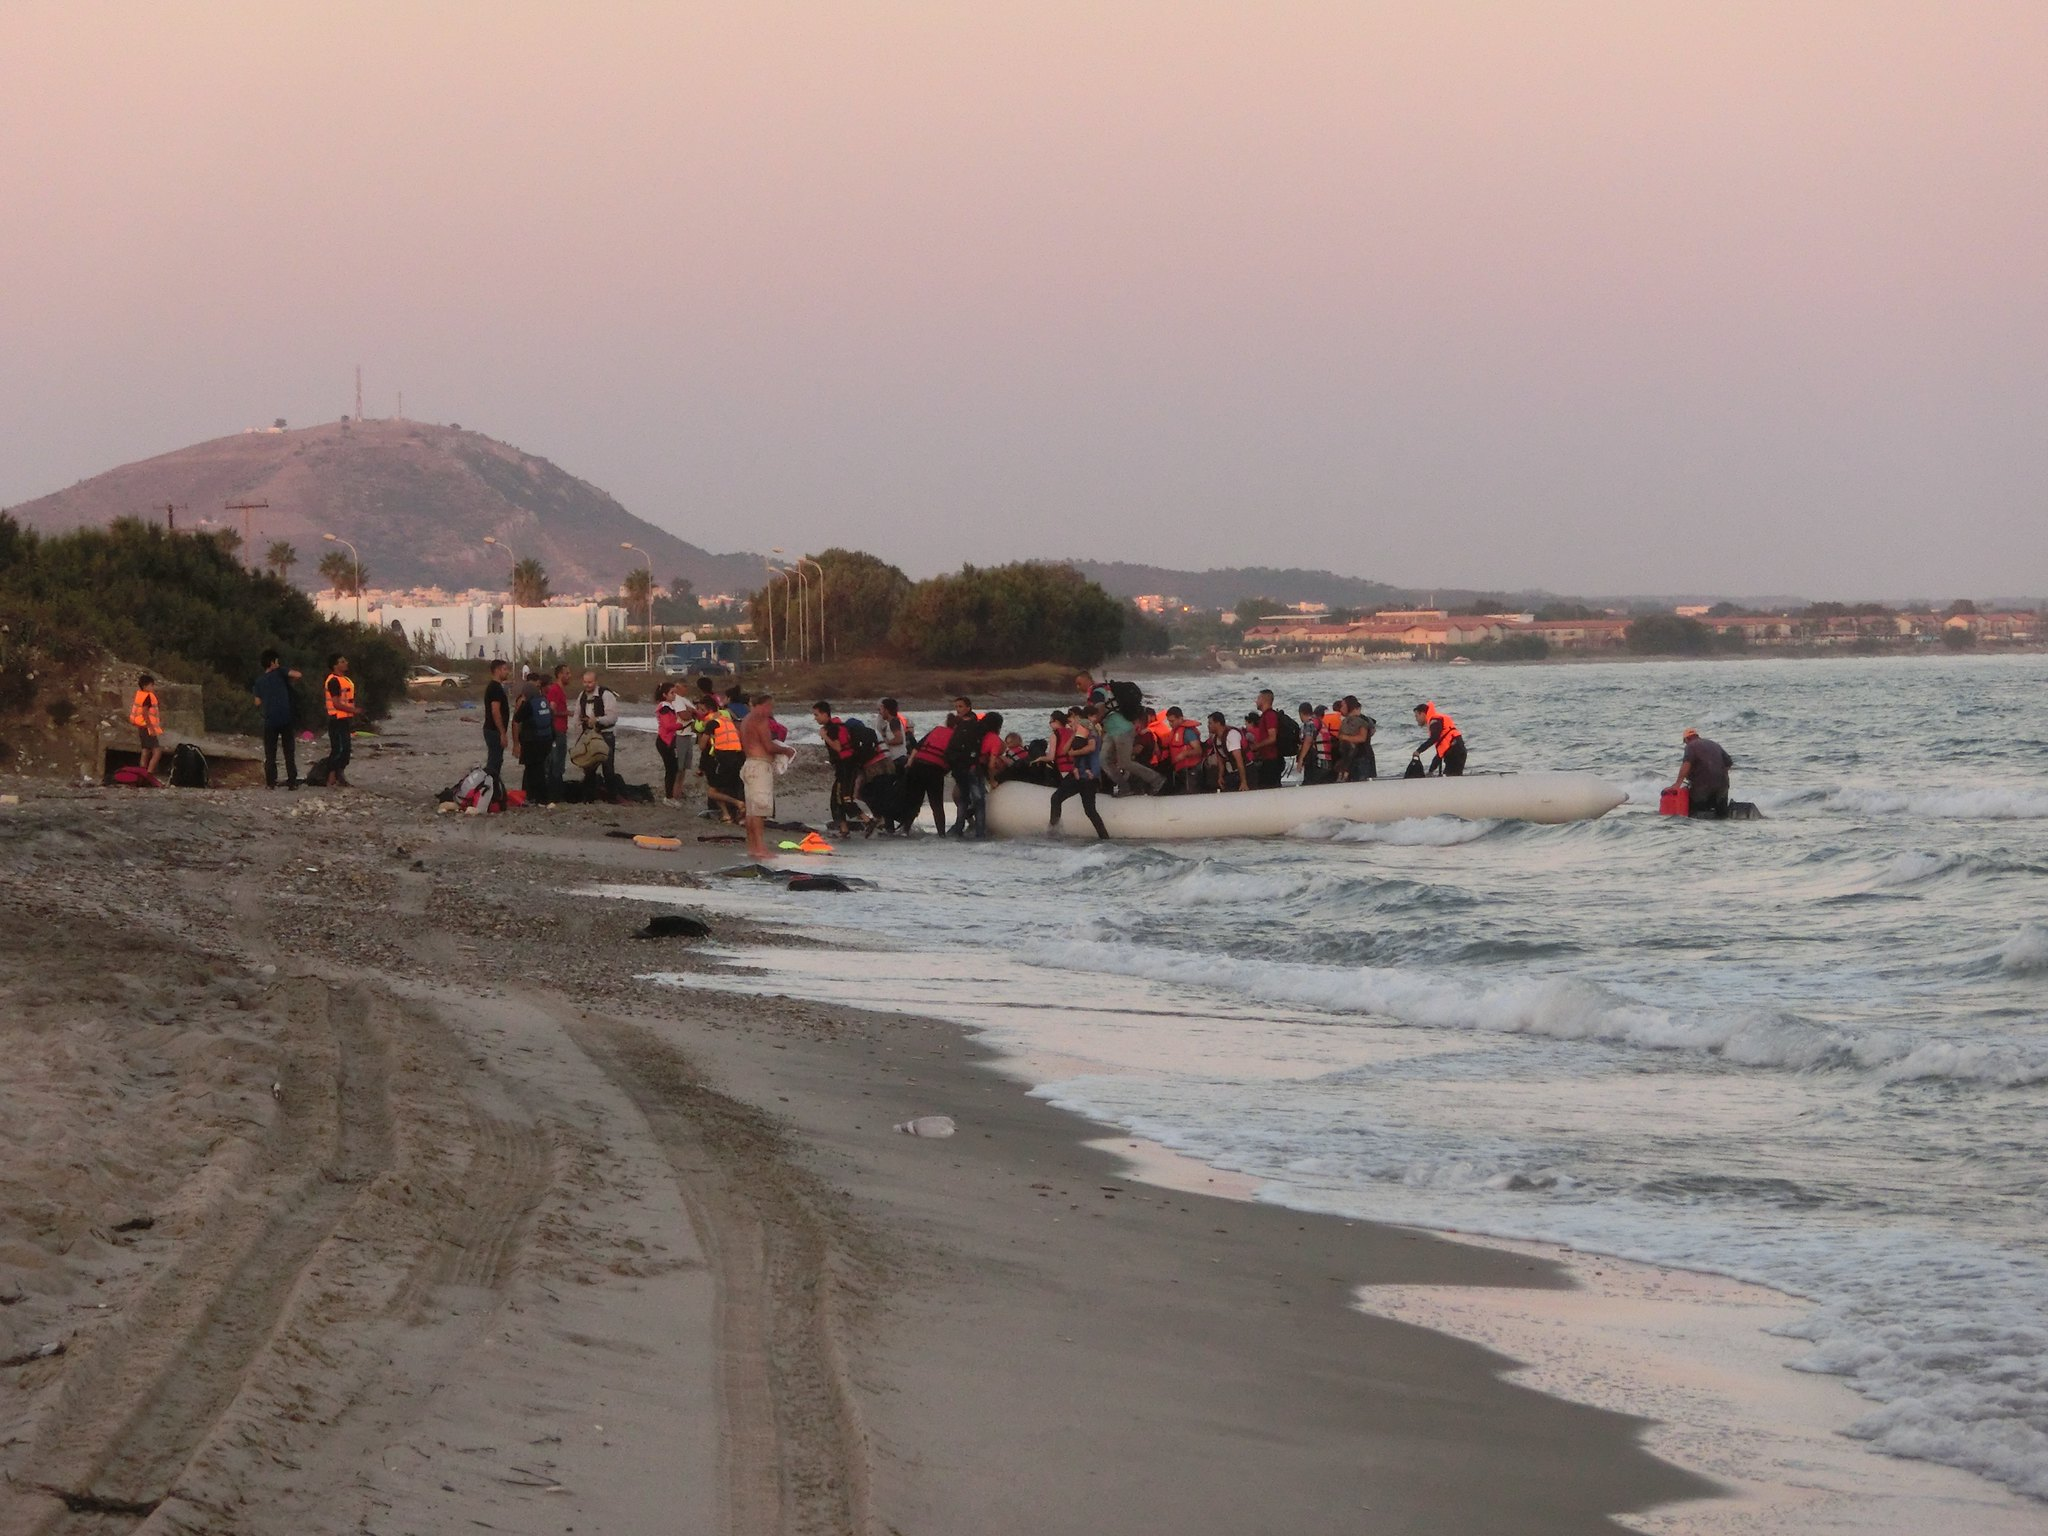 A rubber boat carrying around 50 migrants and refugees arrives on the Greek island of Kos